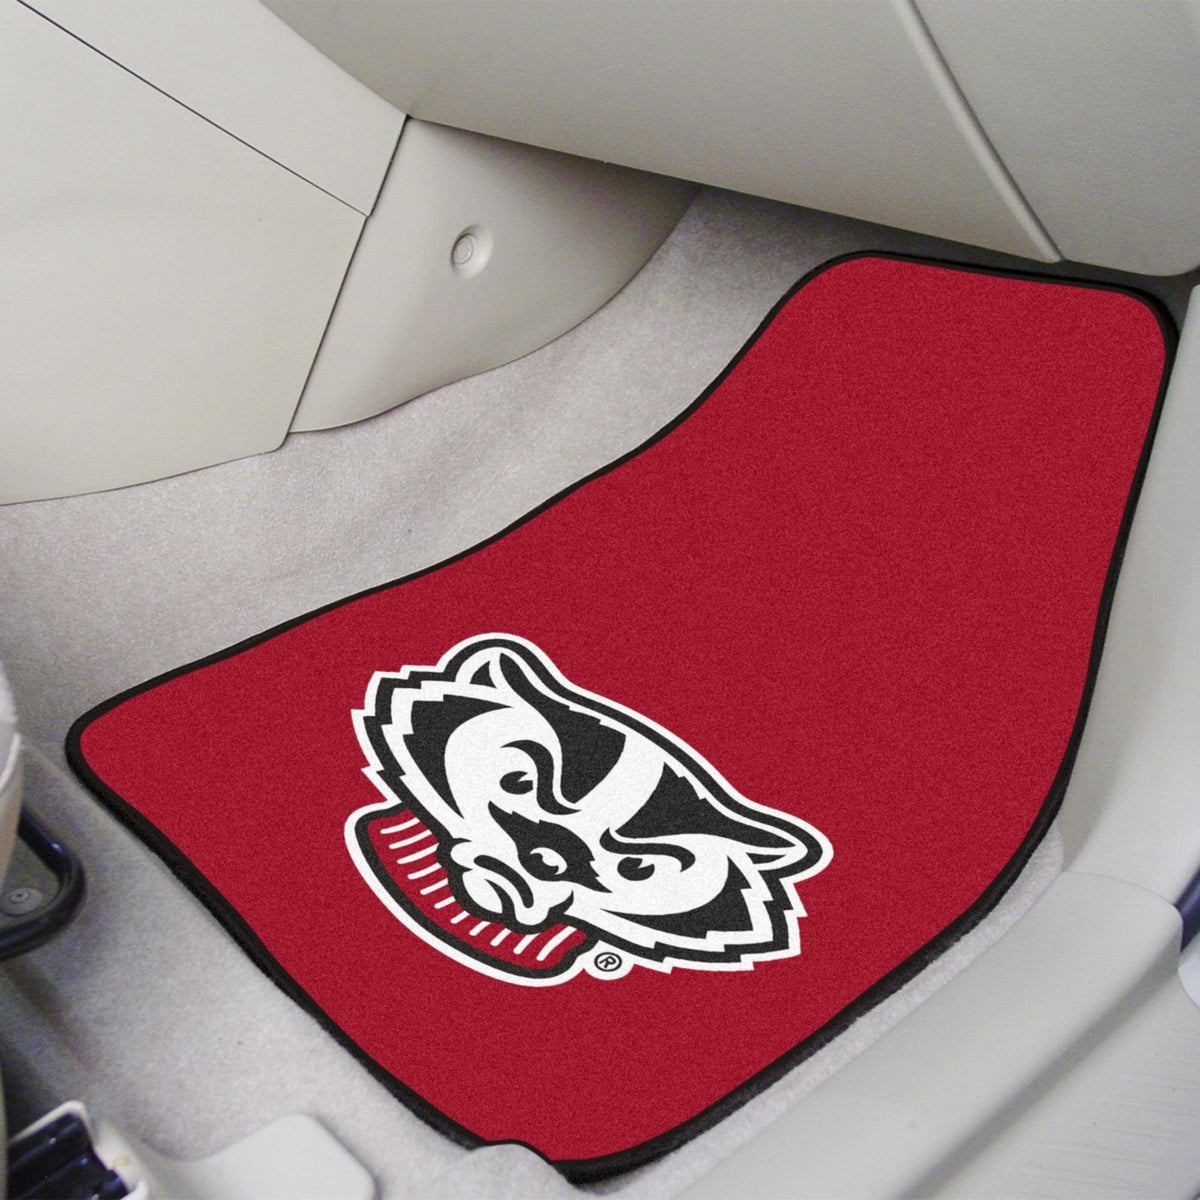 Collegiate - Carpet Car Mat, 2-Piece Set: T - Z Collegiate Car Mat, Front Car Mats, 2-pc Carpet Car Mat Set, Collegiate, Auto Fan Mats Wisconsin 2